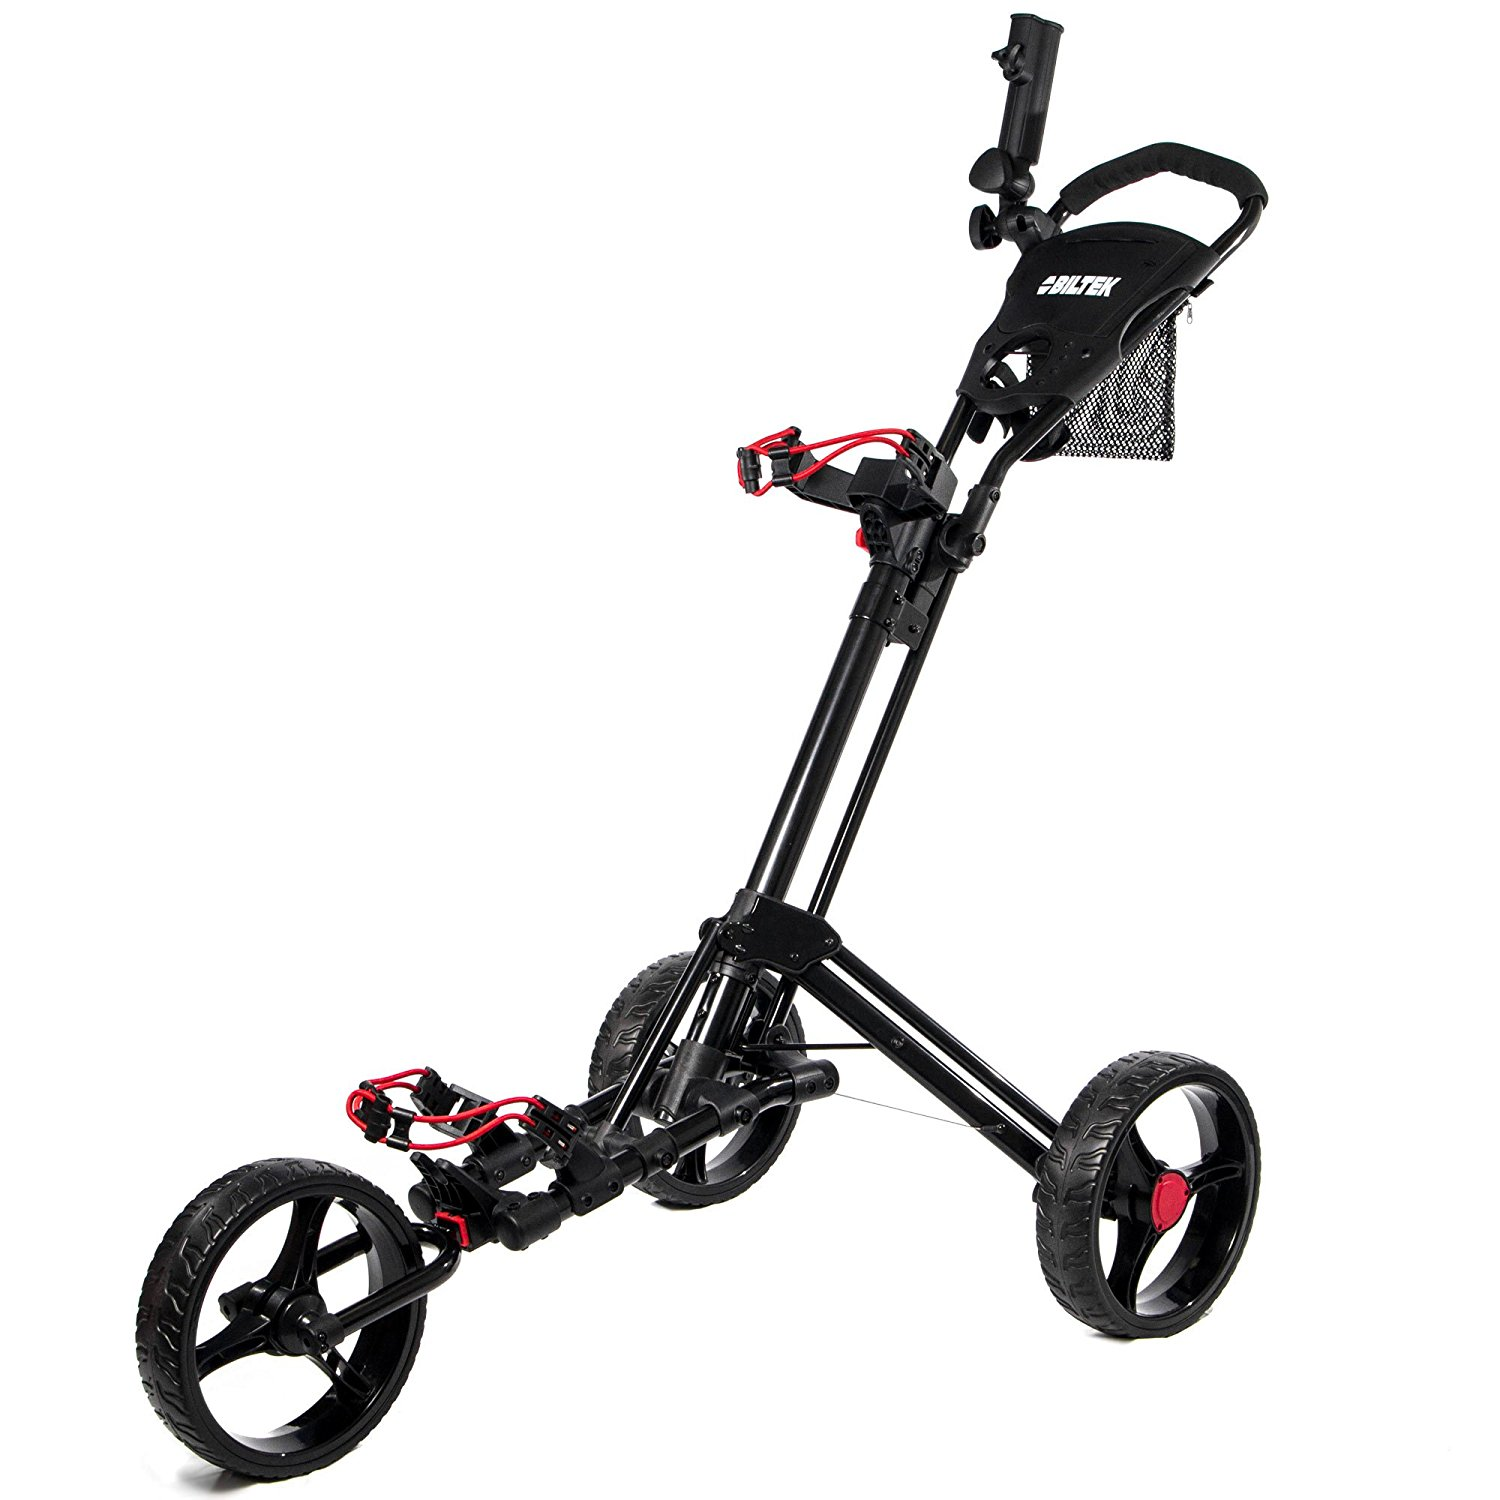 Biltek Premium 3 Wheel Golf Push Cart Trolleys